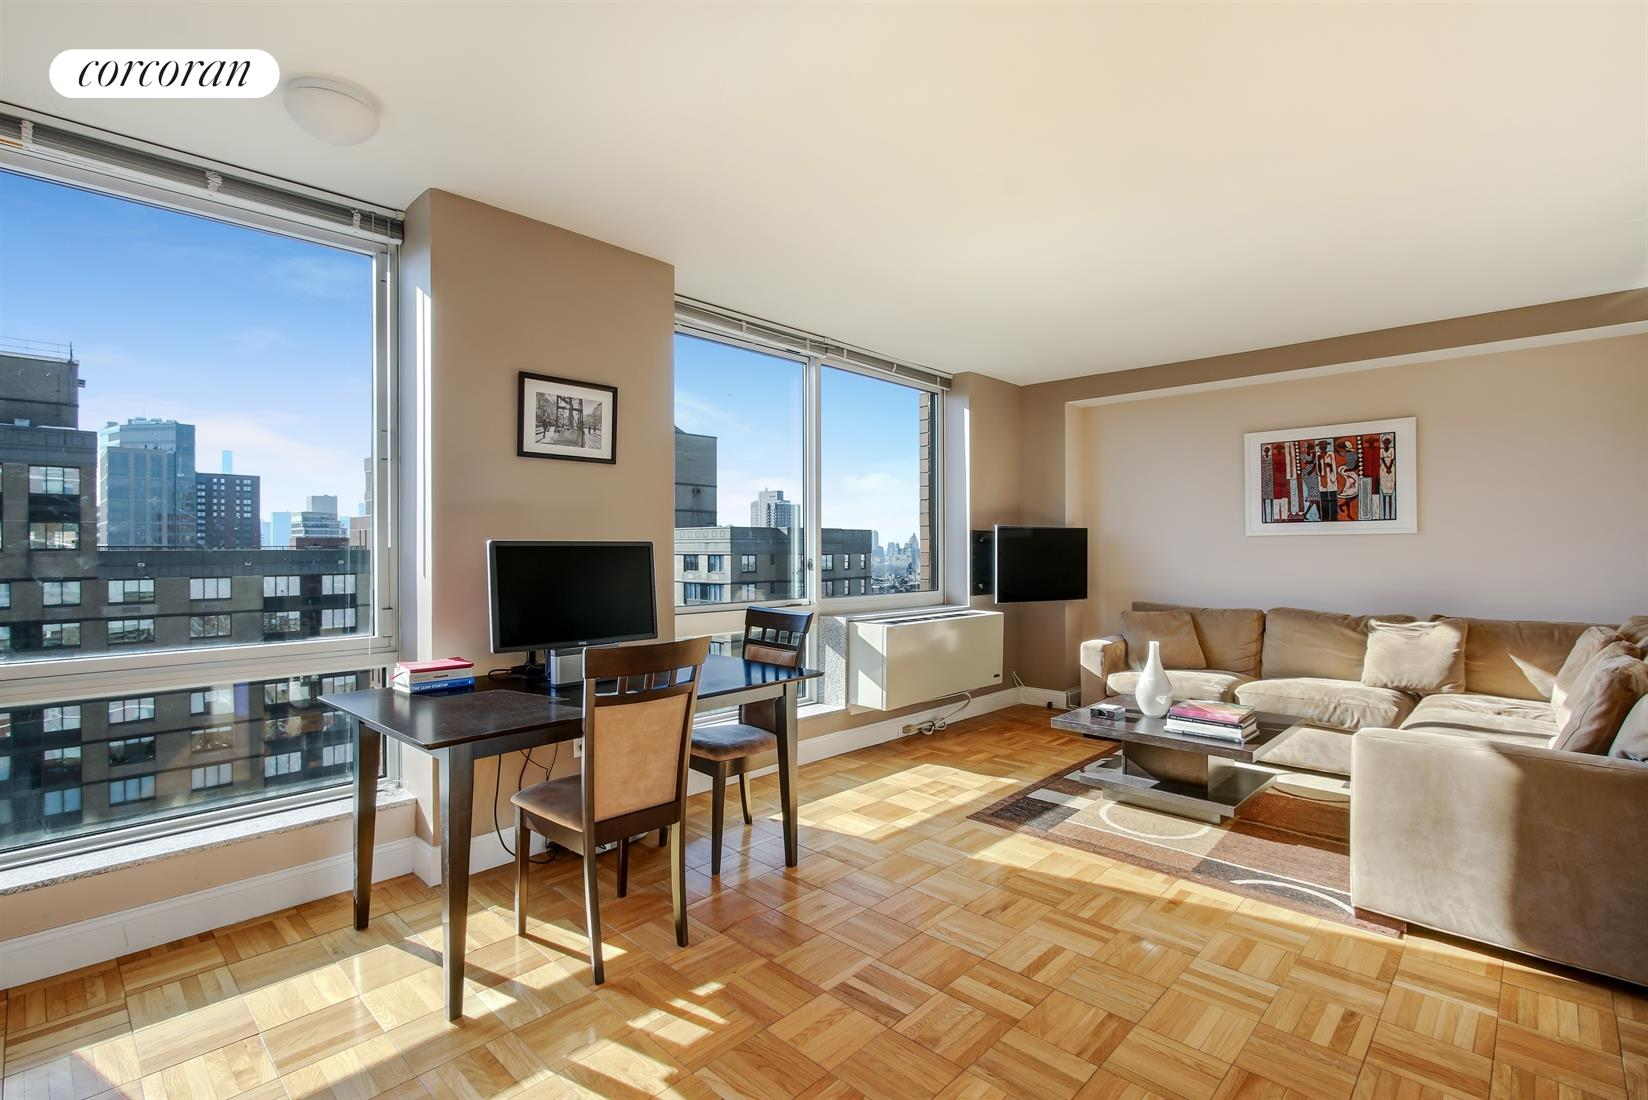 215 East 96th Street, 36D, Living Room / Dining Room